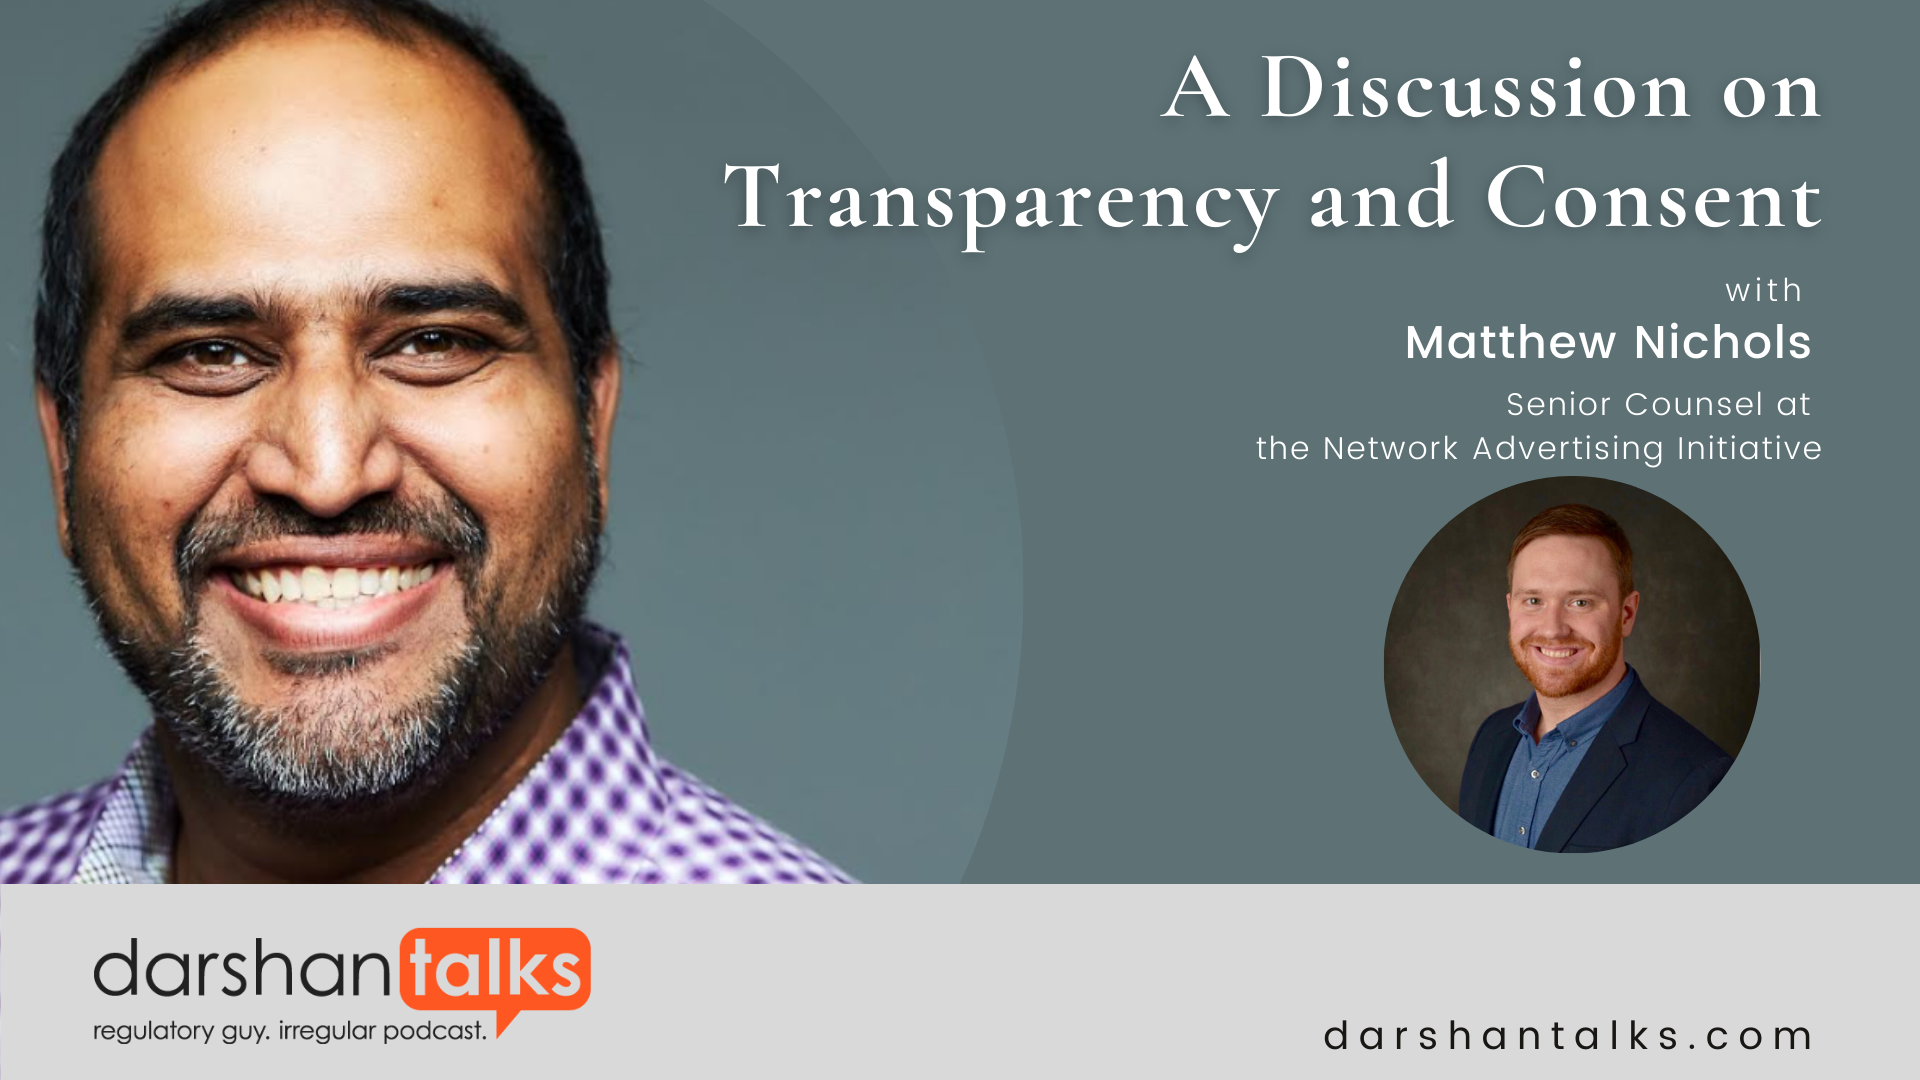 A Discussion on Transparency and Consent